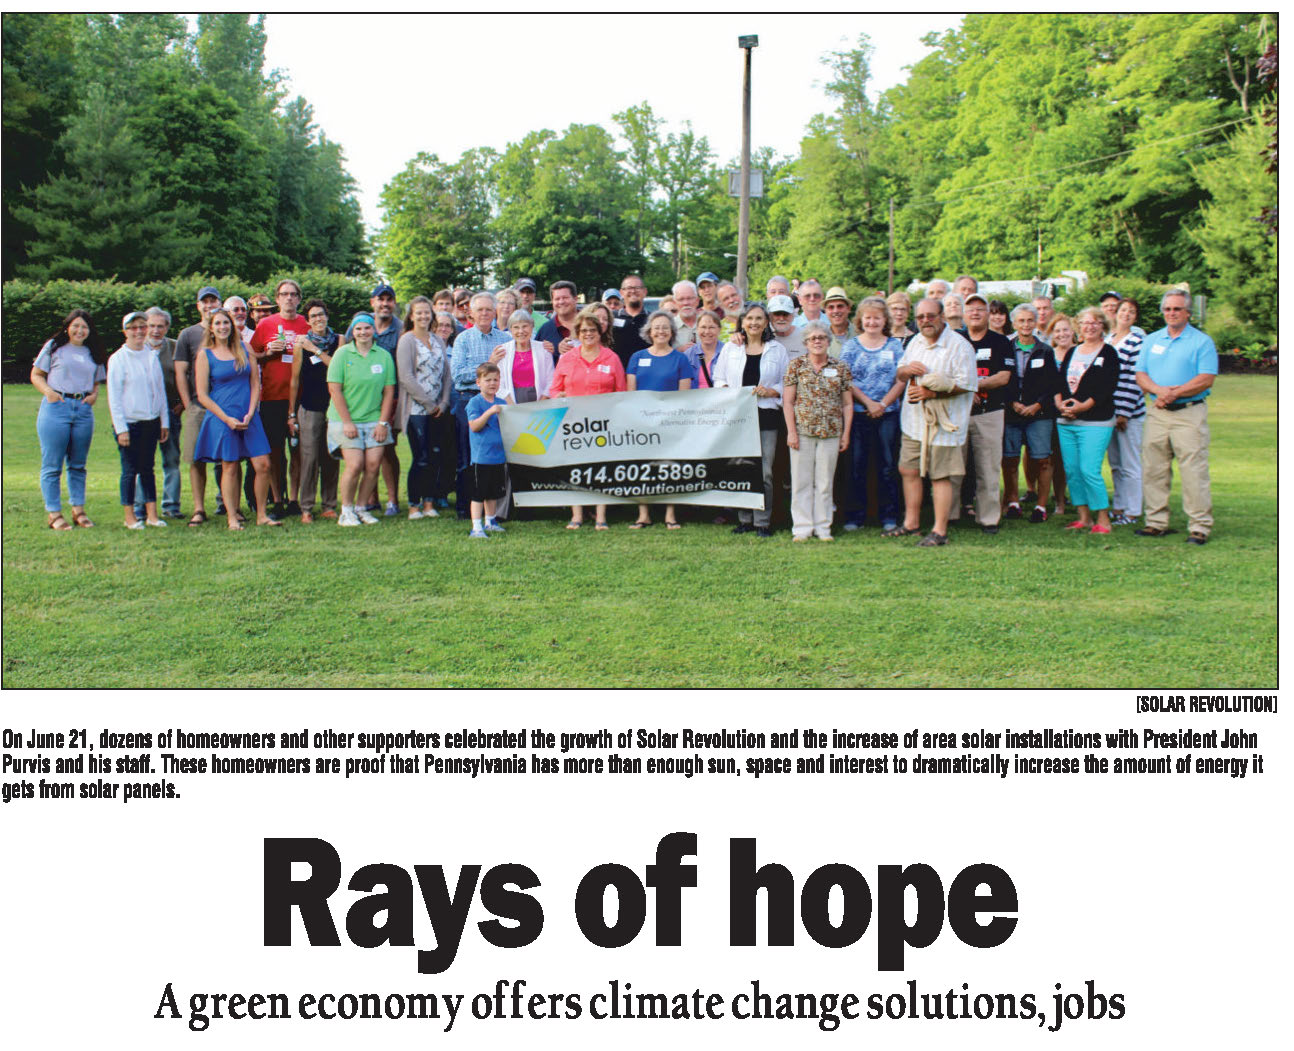 Connect with Your Environment - Rays of Hope